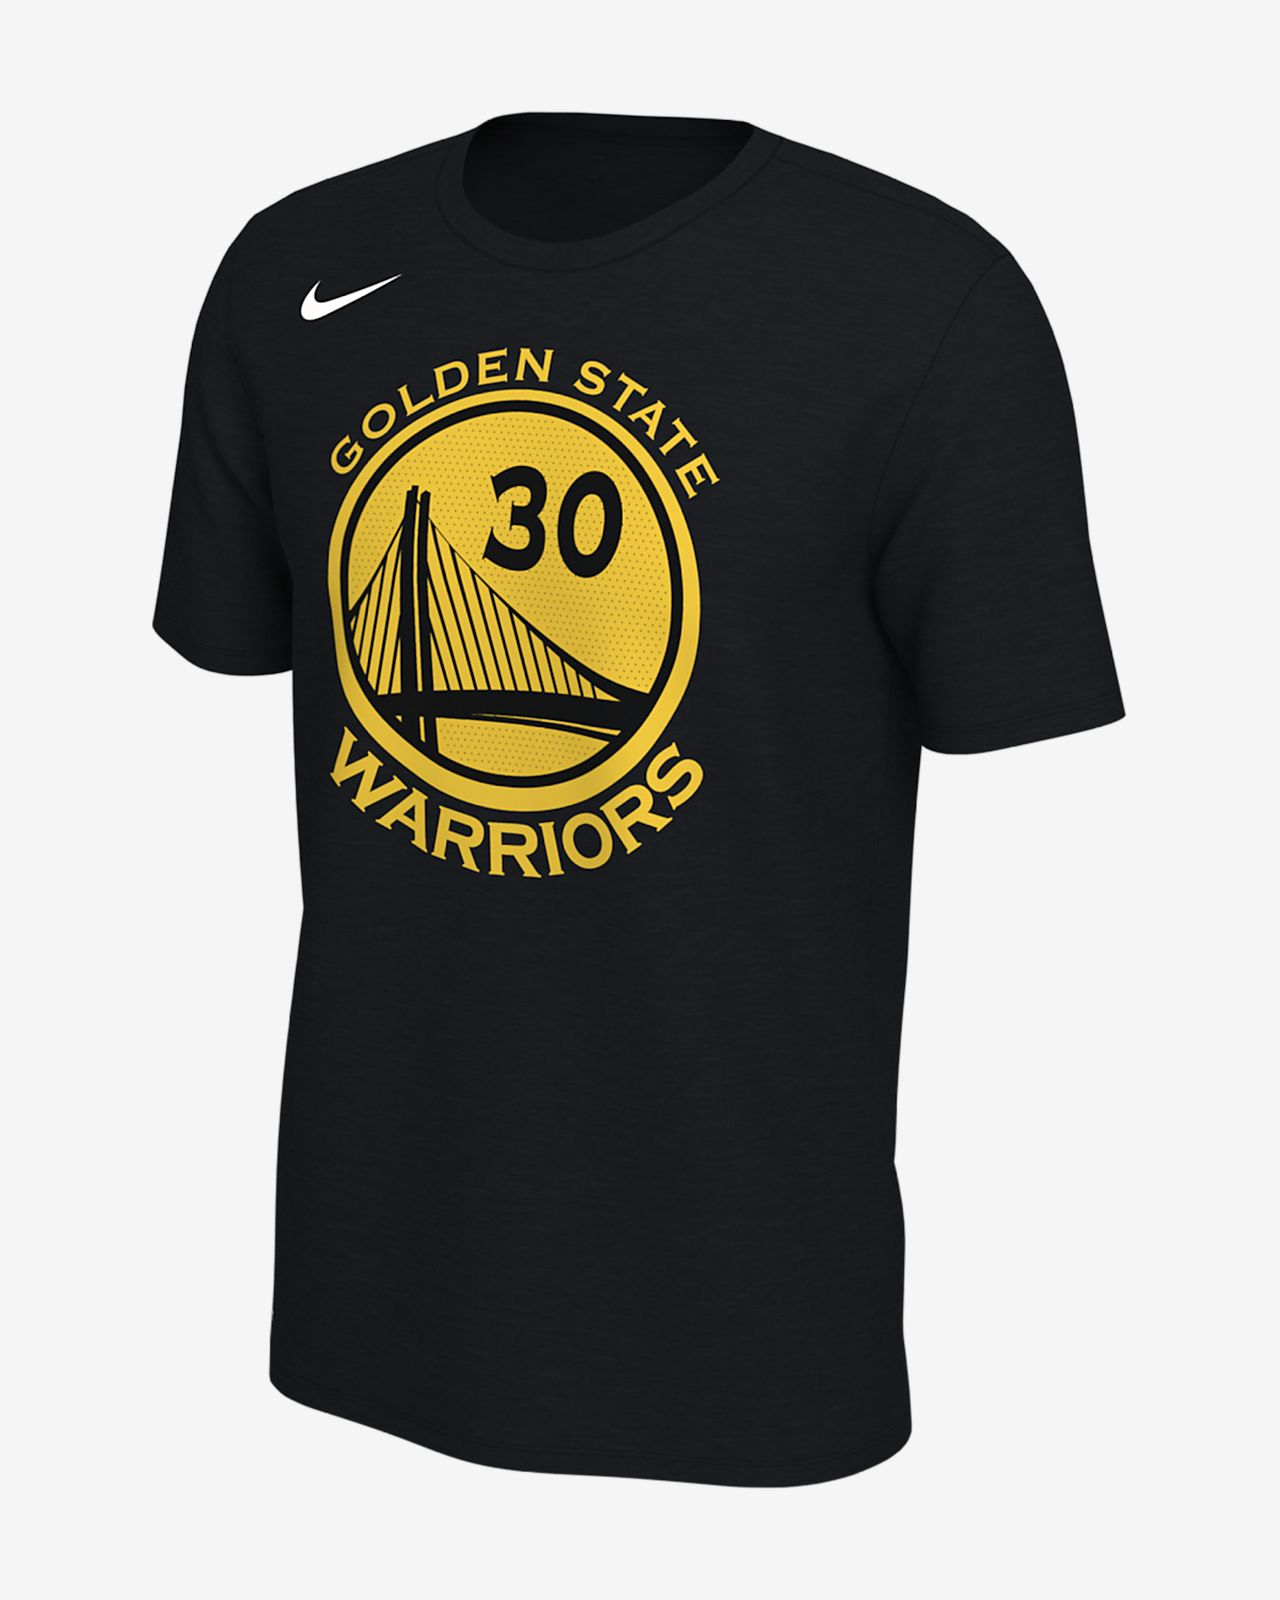 310fc8ab0a4c Stephen Curry Golden State Warriors Nike Dri-FIT Men s NBA T-Shirt ...